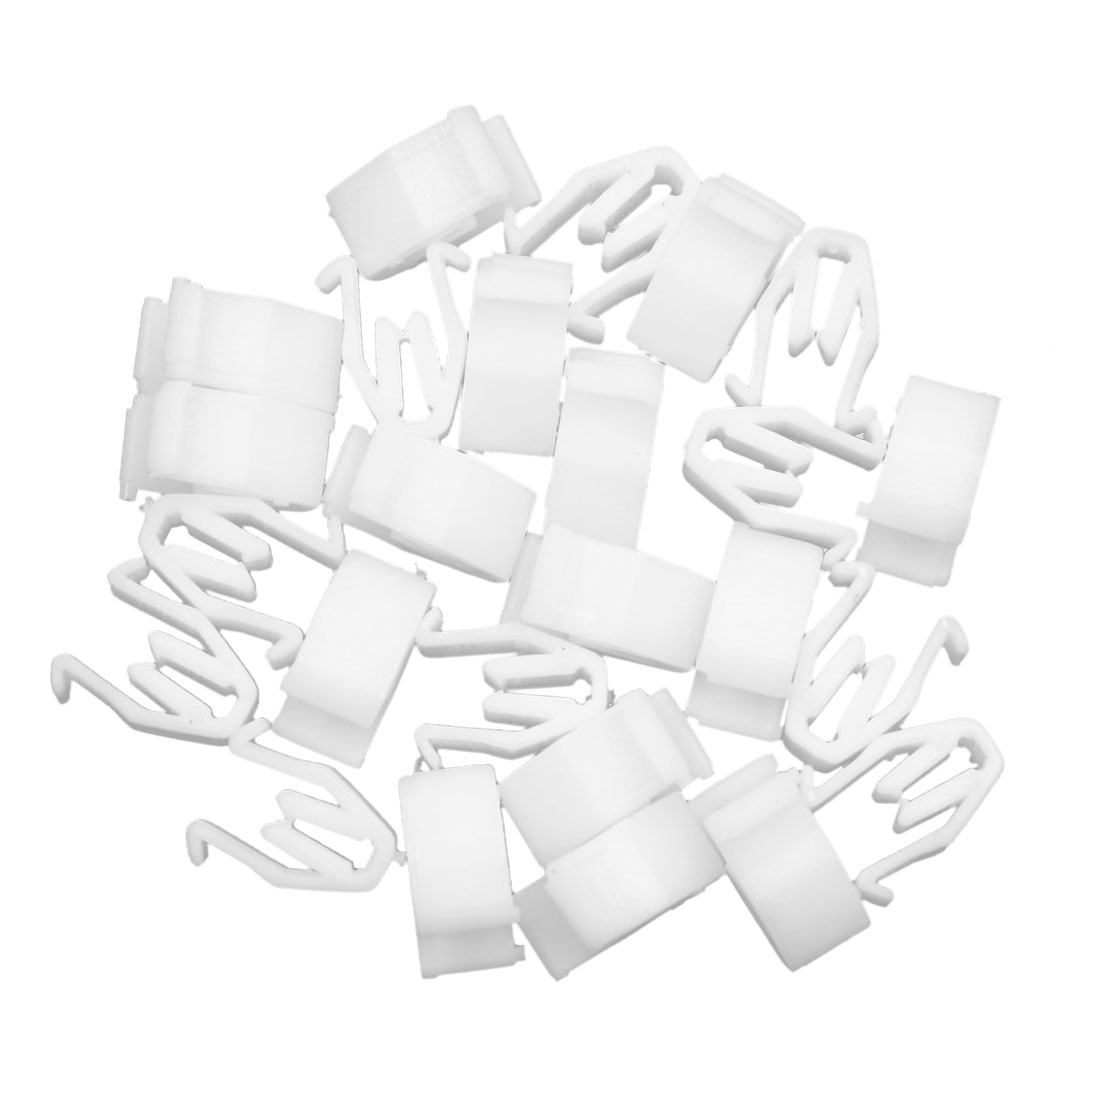 25pcs Universal White Car Console Retainer Auto Dashboard Instrument Clip - image 2 of 2